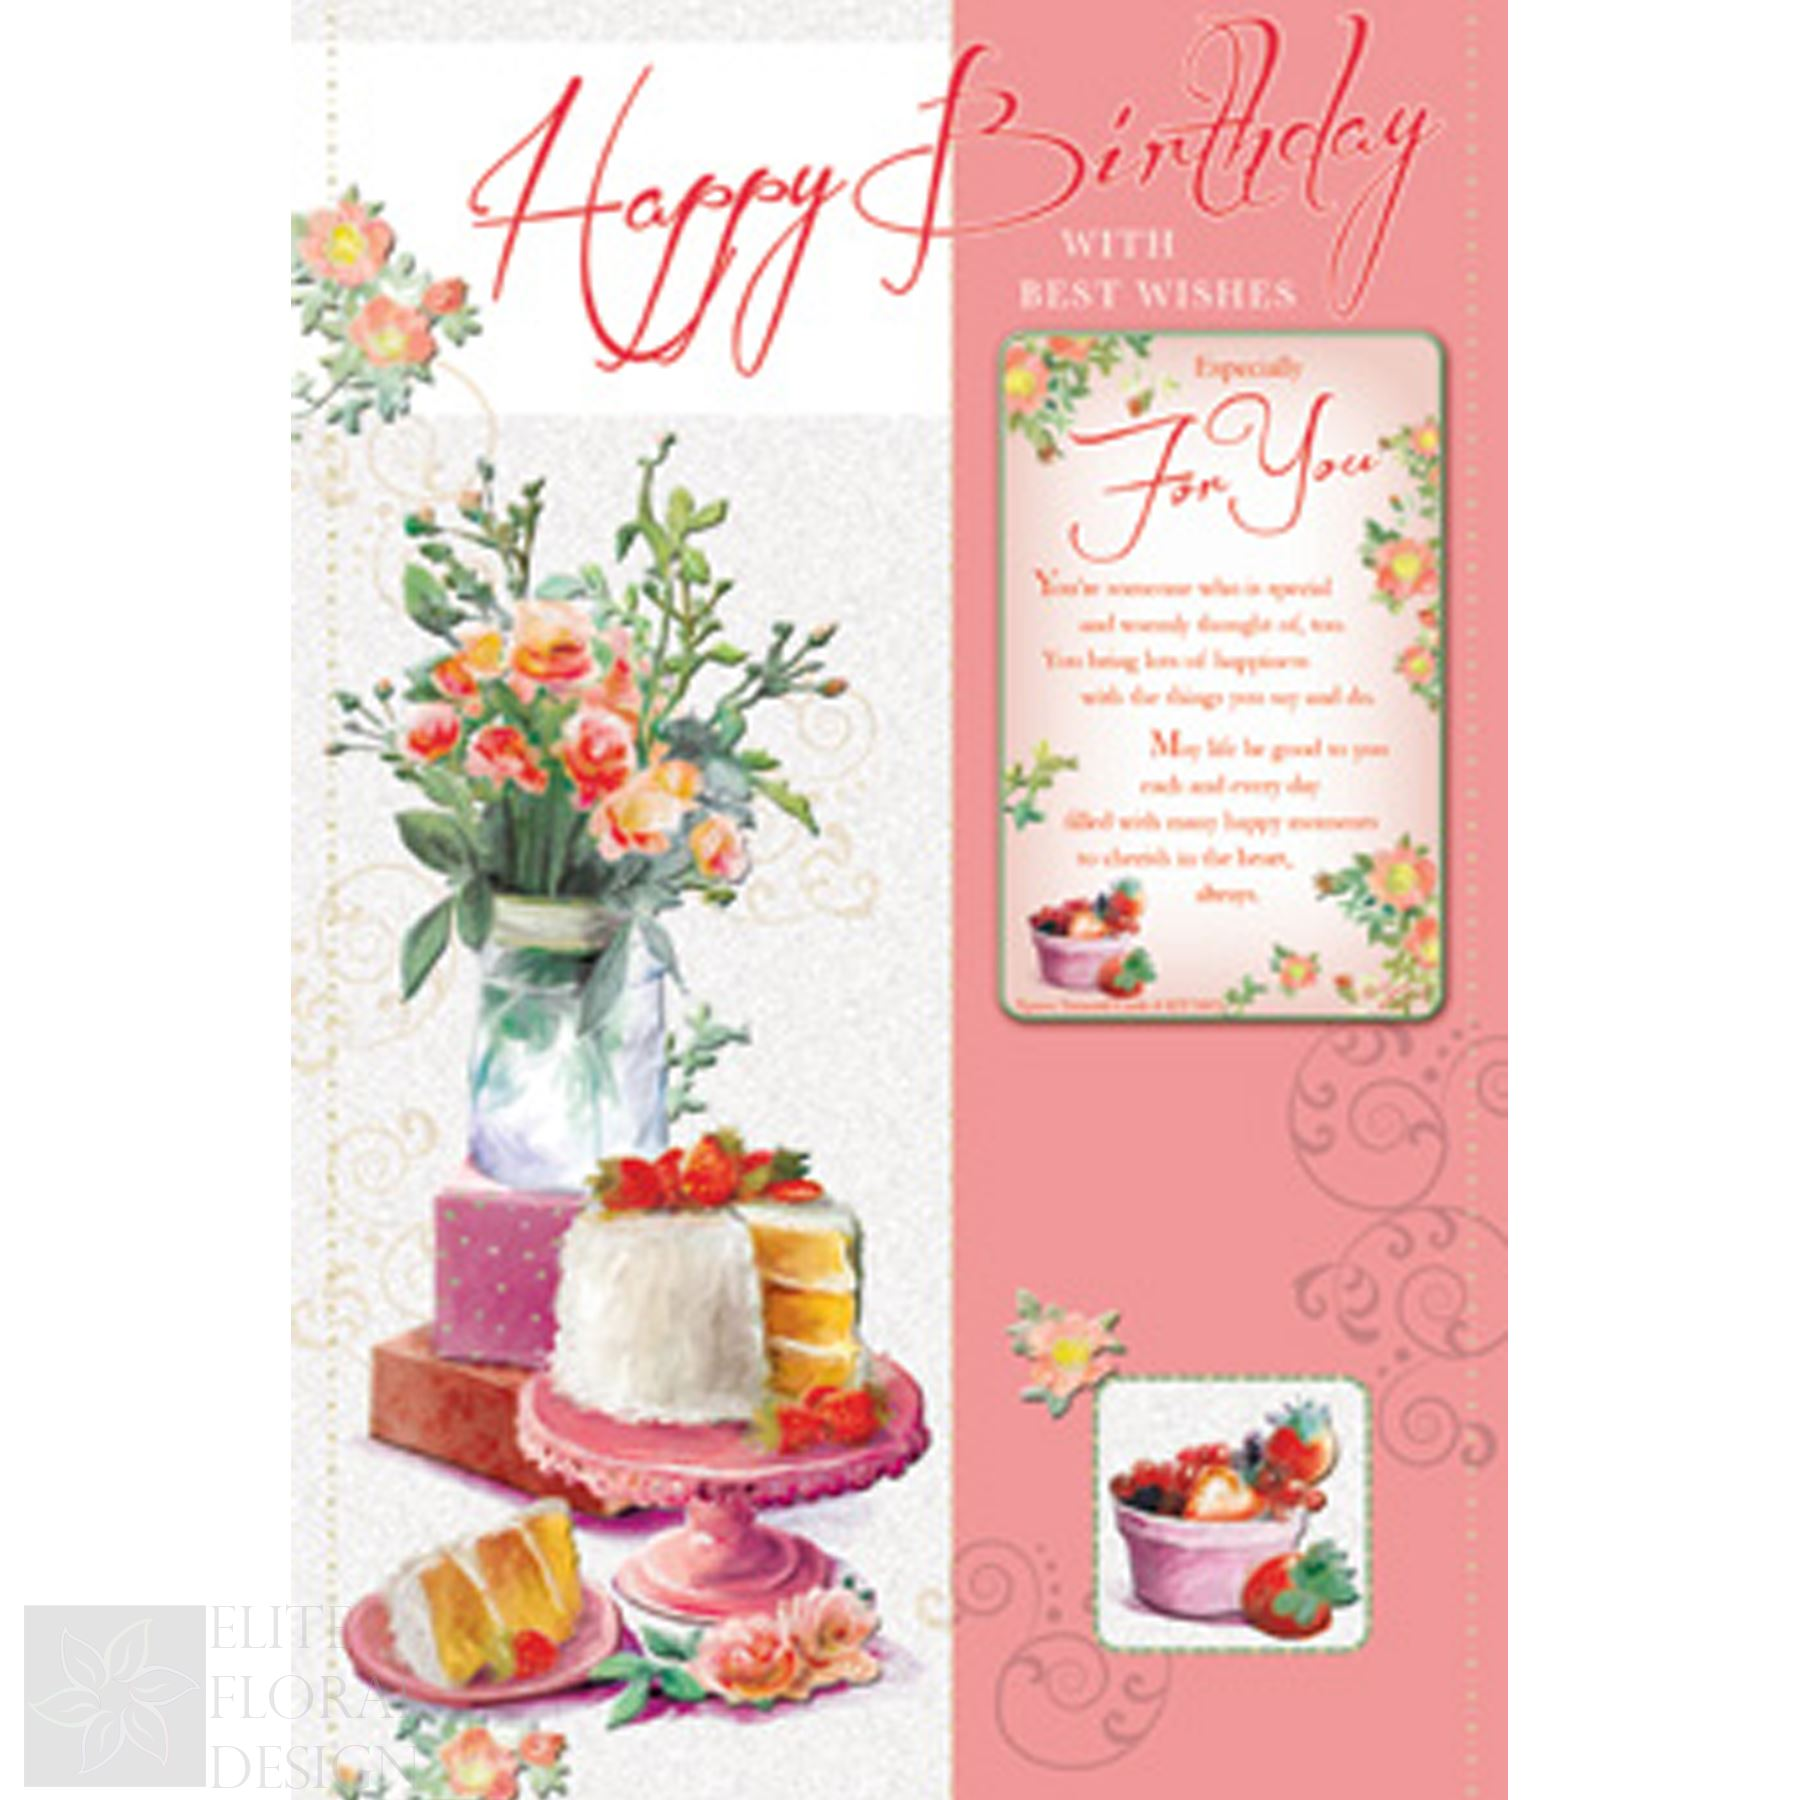 Terrific Happy Birthday Greeting Card With Best Wishes Cake And Flowers Birthday Cards Printable Trancafe Filternl